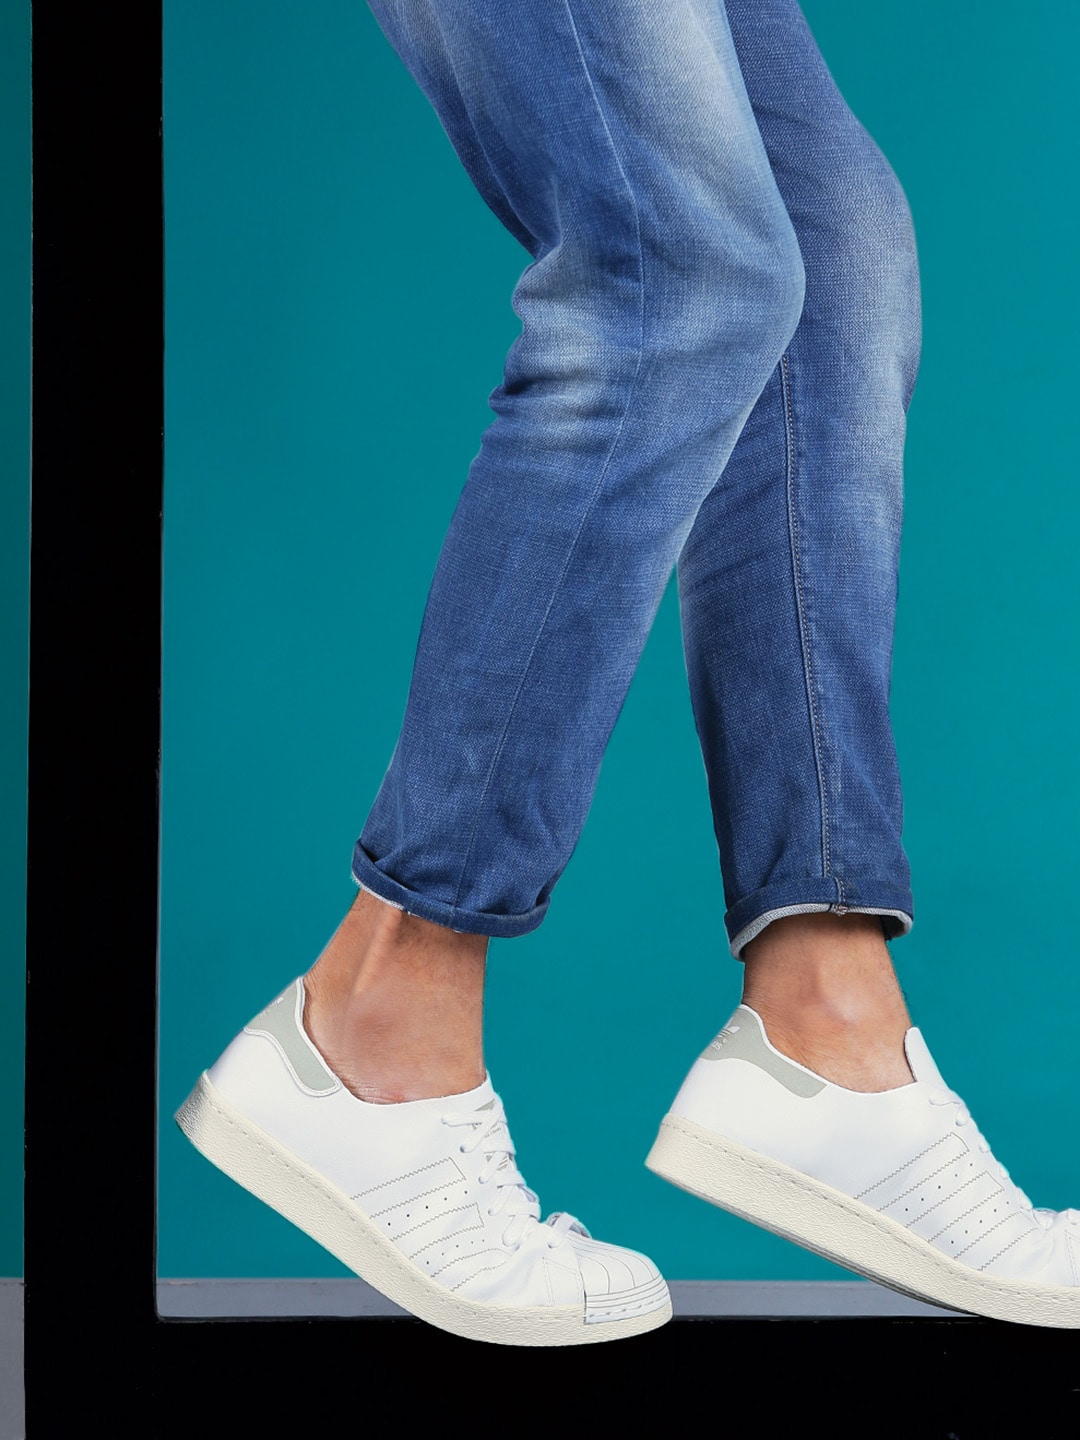 416be80056d7 Adidas Shoes - Buy Adidas Shoes for Men   Women Online - Myntra